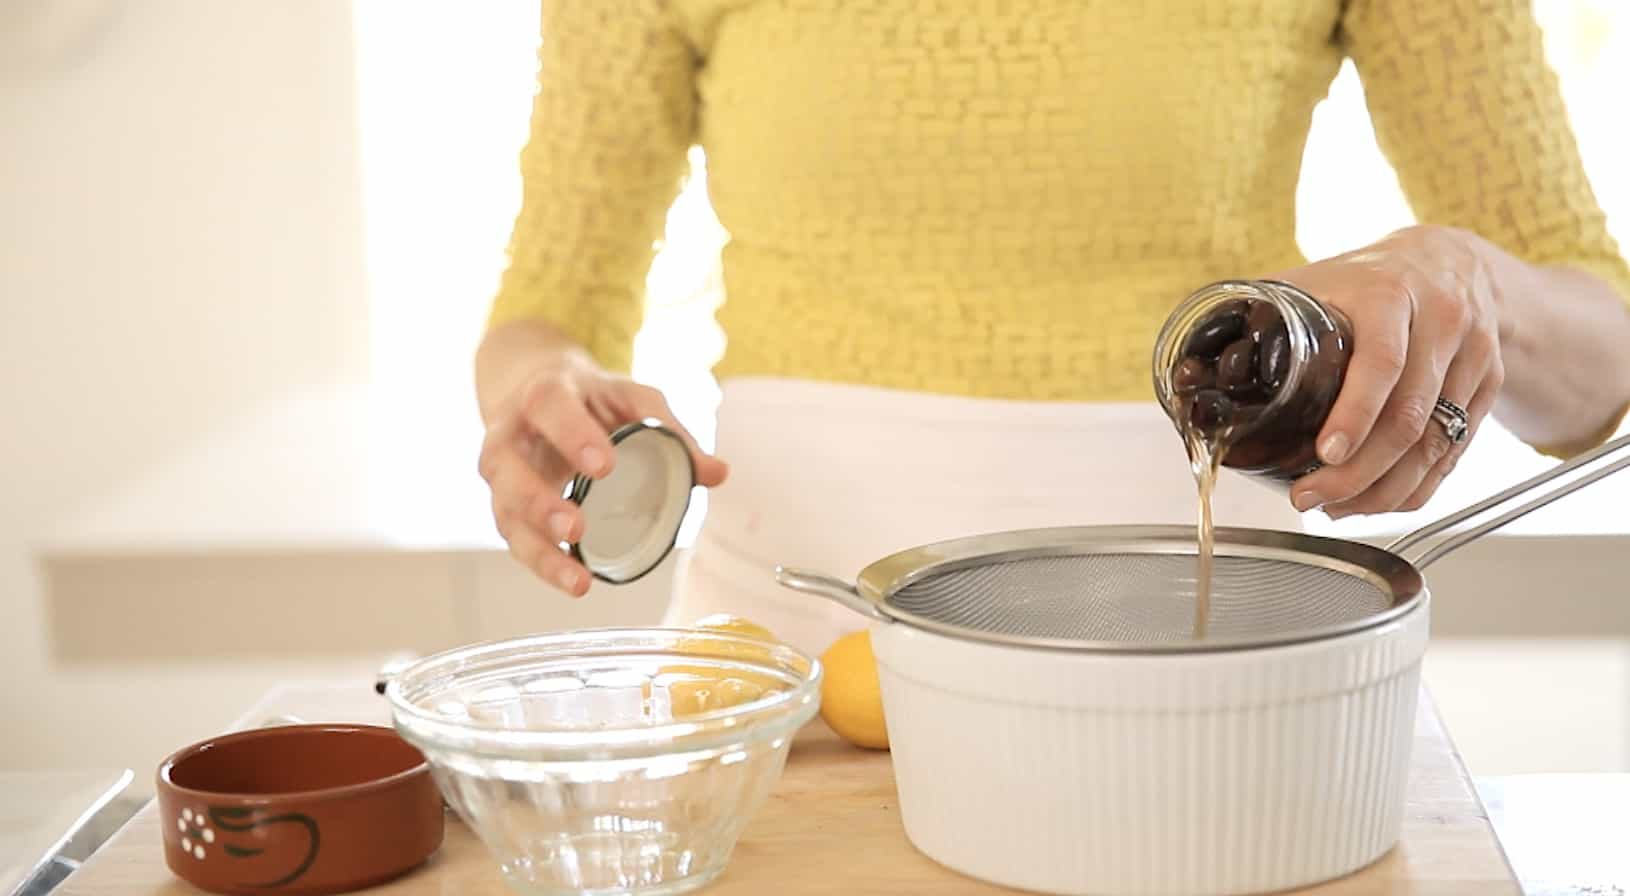 A person draining olives from a jar into a strainer